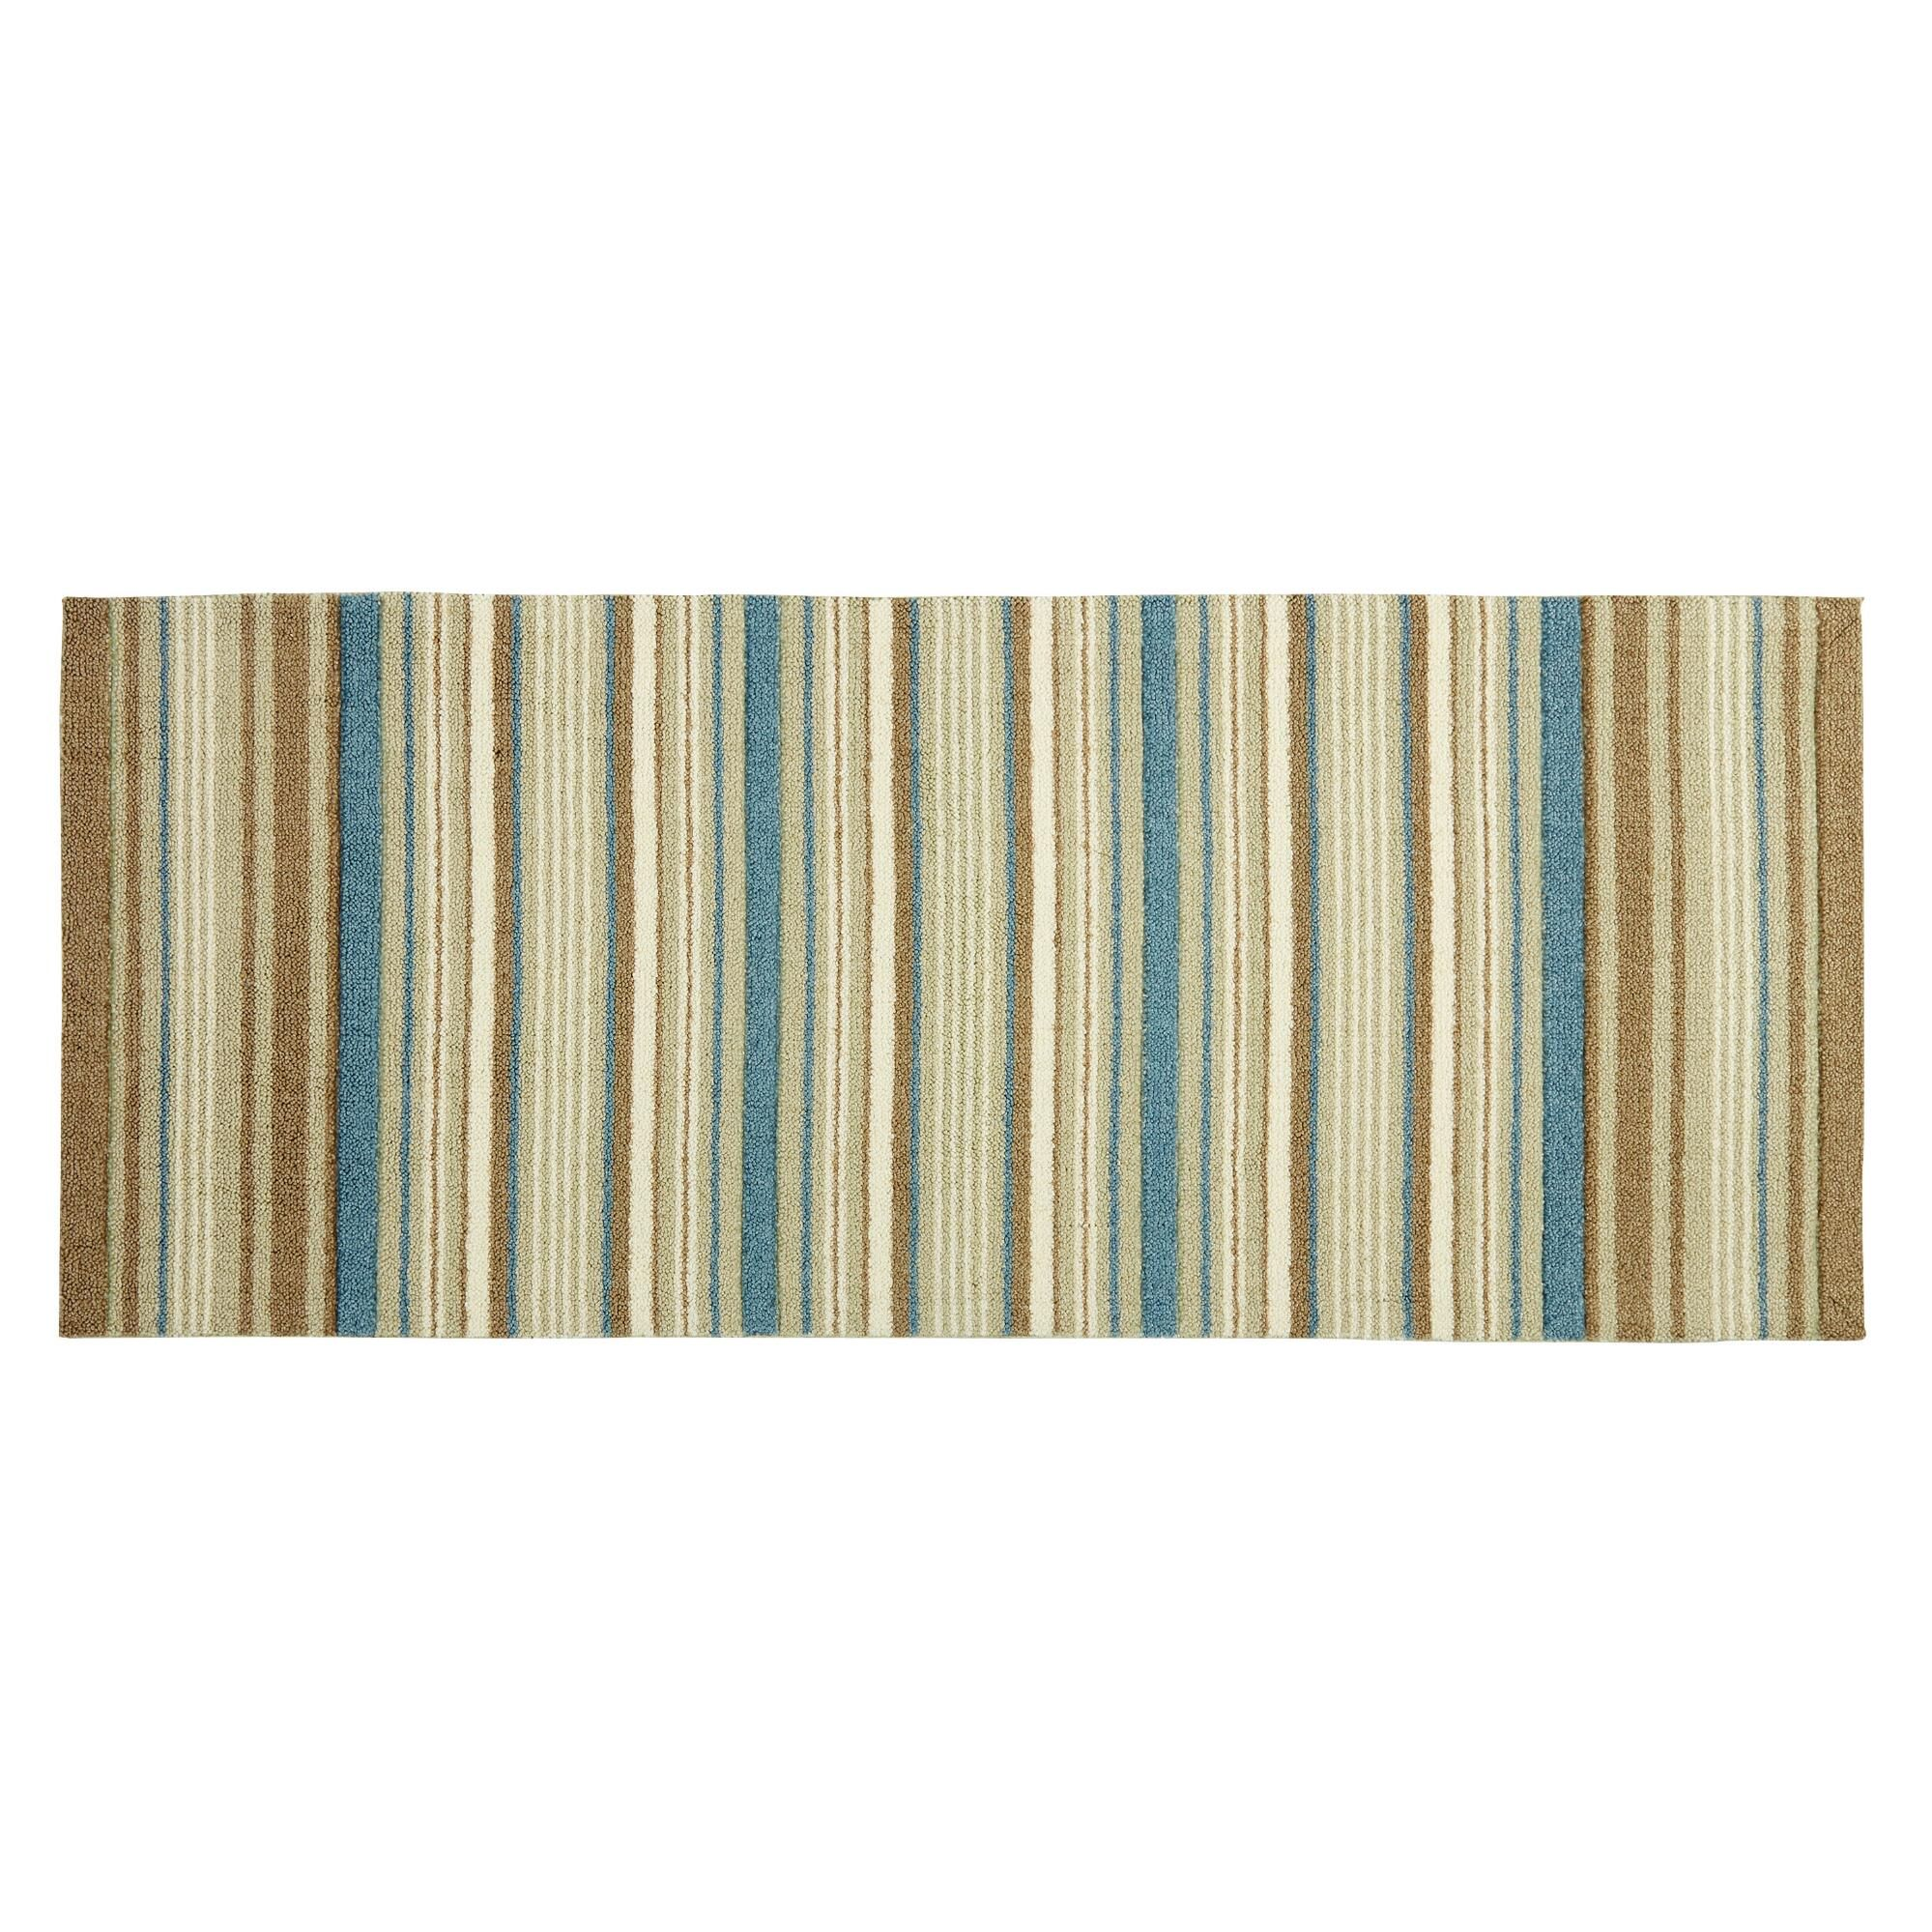 Stylishly striped, our cozy Waverly rug brings comfort and color to your home. A vibrant pattern and easy-care design make this runner a perfect choice for any area of your home.